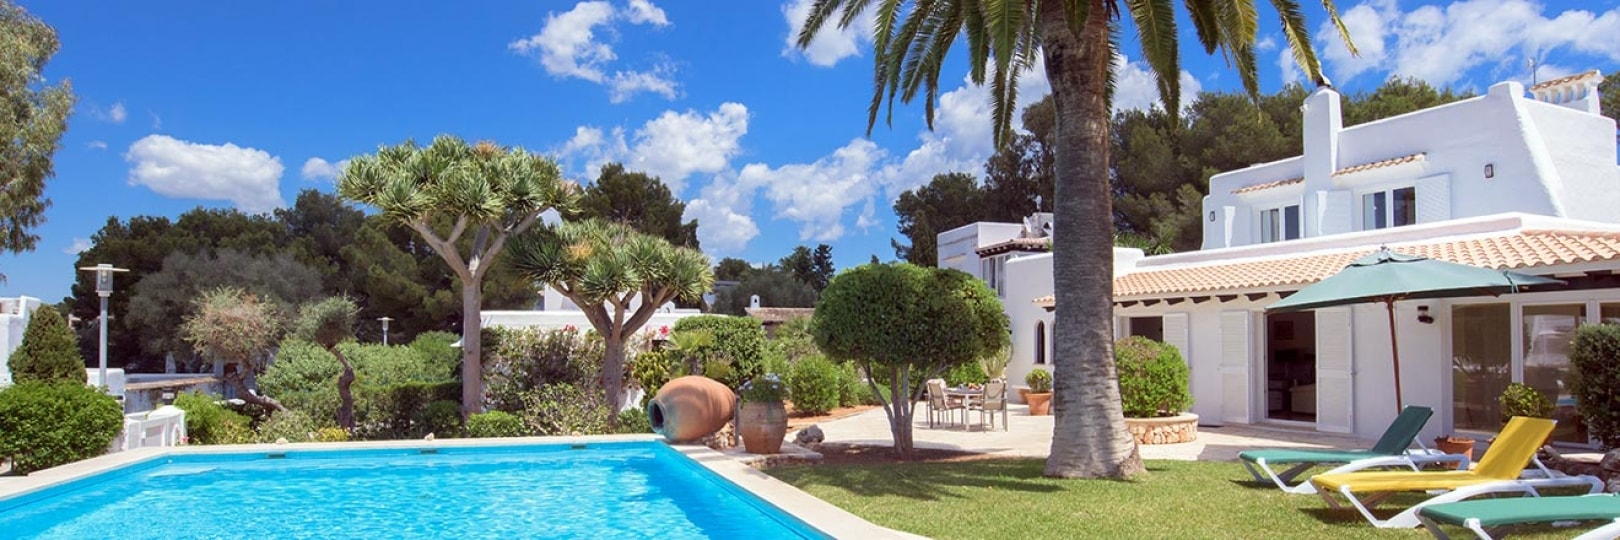 Holiday villa with private pool in Majorca for rent